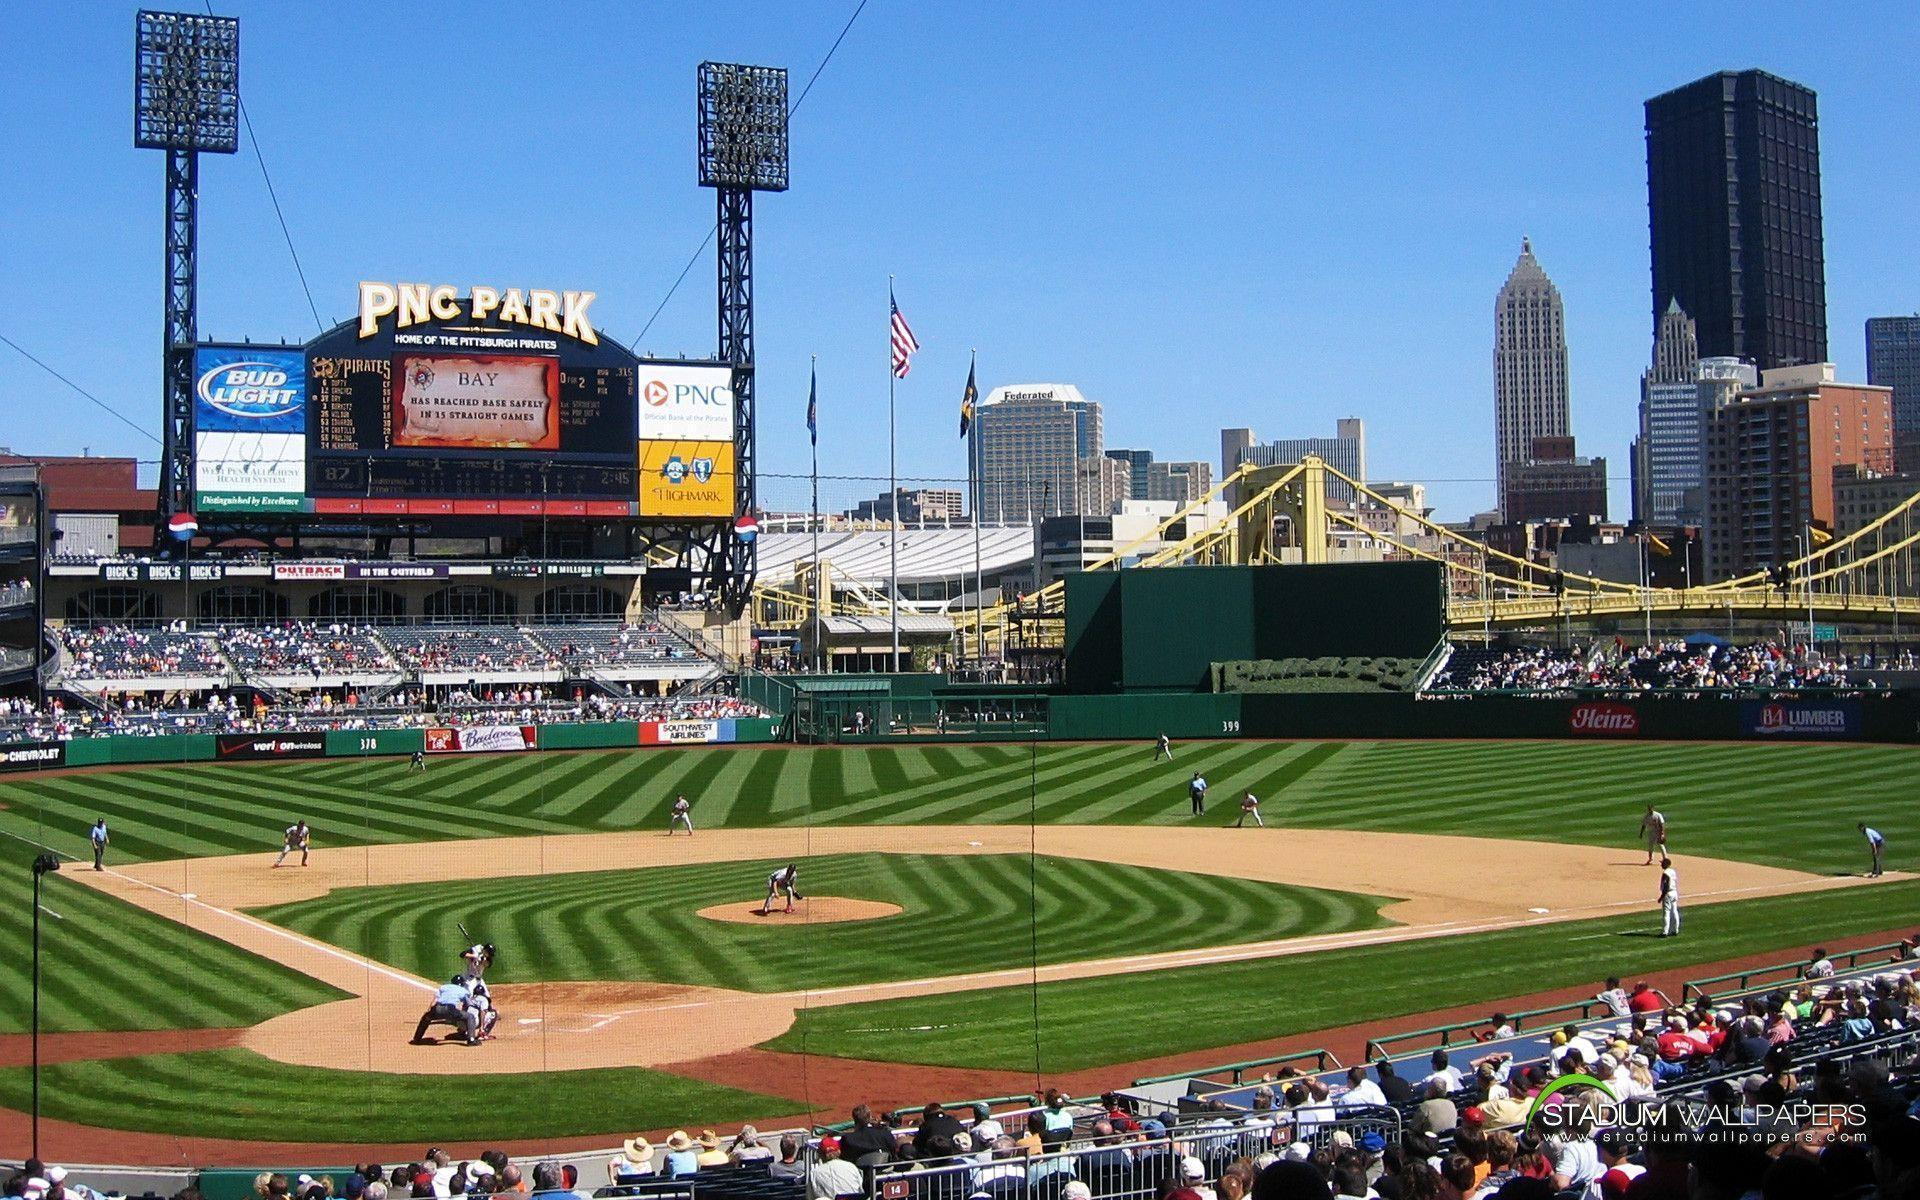 mlb baseball fields wallpaper - photo #1